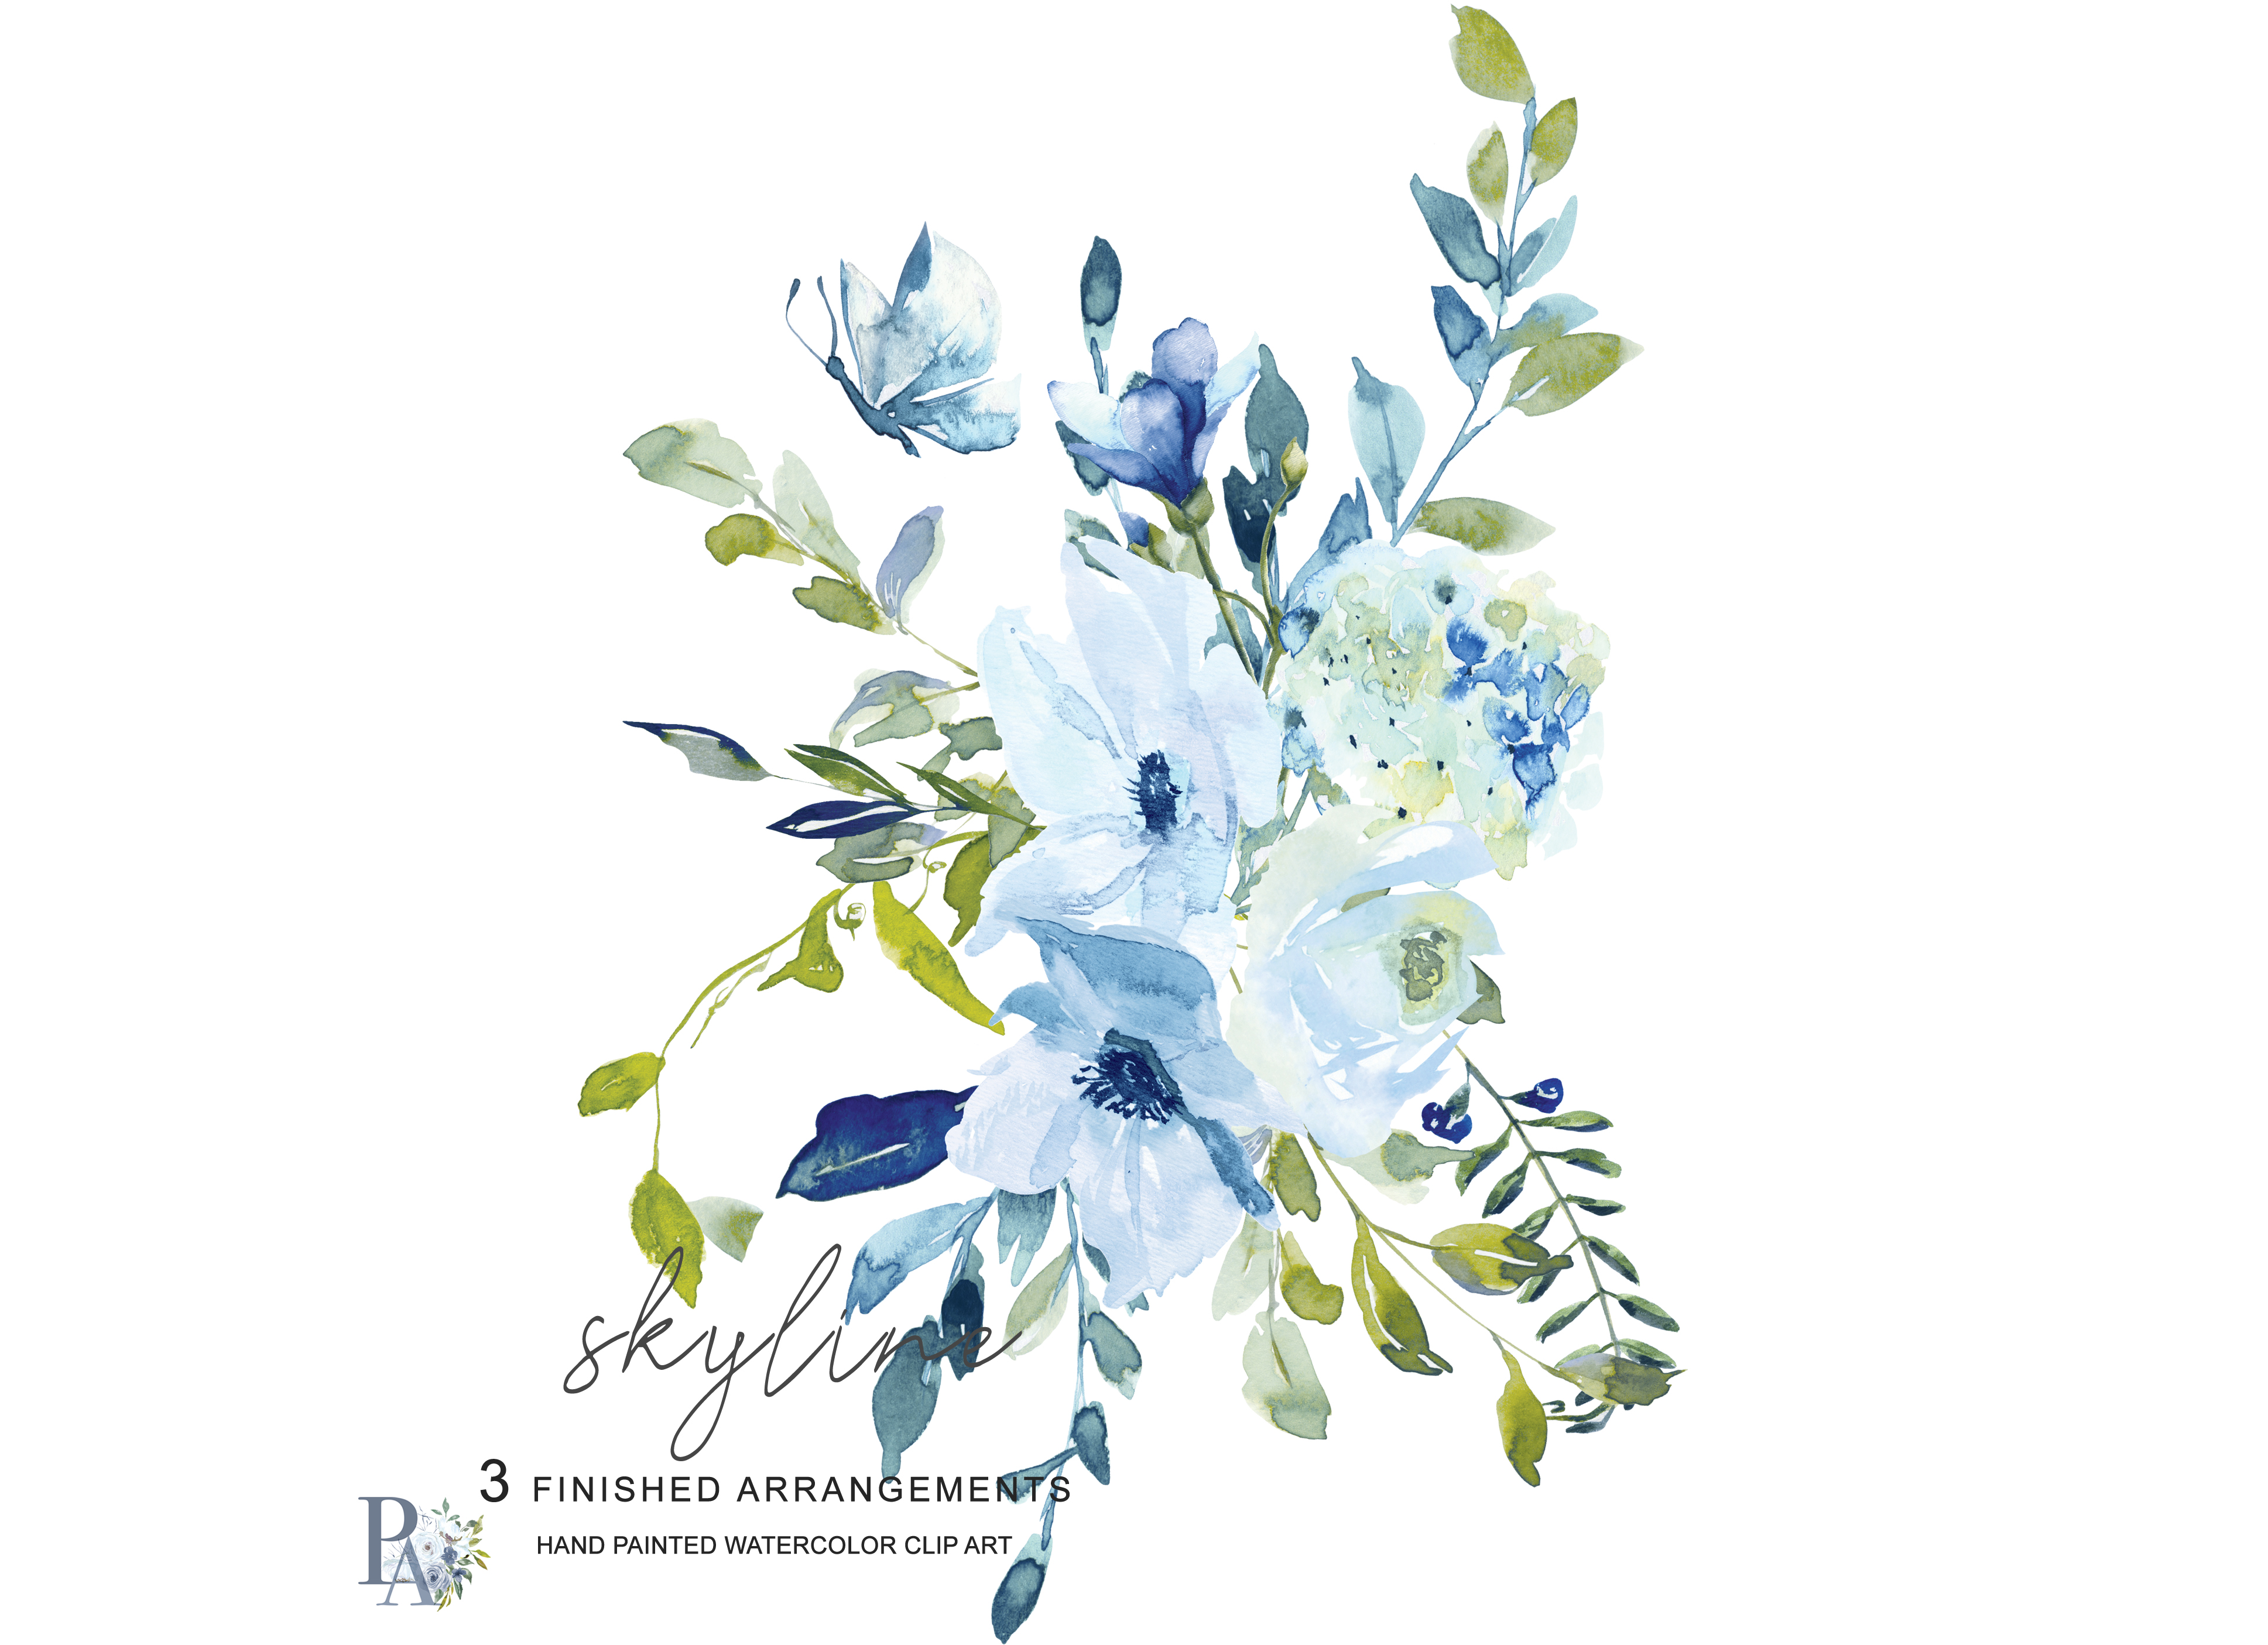 Hand Painted Watercolor Light Blue and Green Florals Clipart.